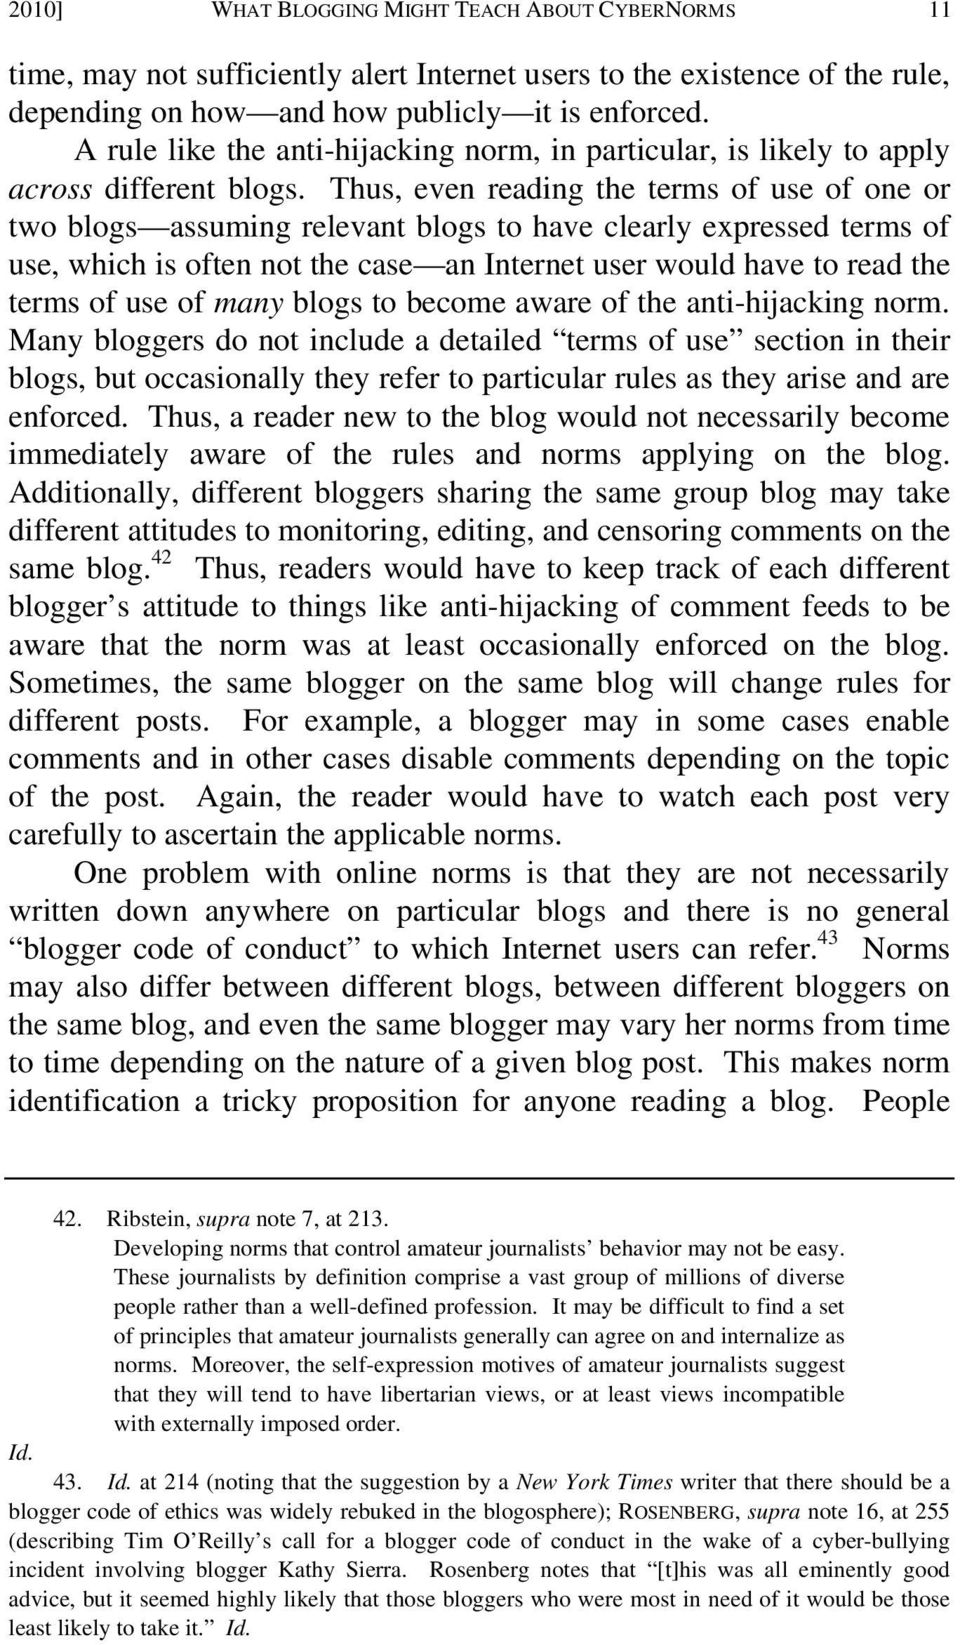 Thus, even reading the terms of use of one or two blogs assuming relevant blogs to have clearly expressed terms of use, which is often not the case an Internet user would have to read the terms of